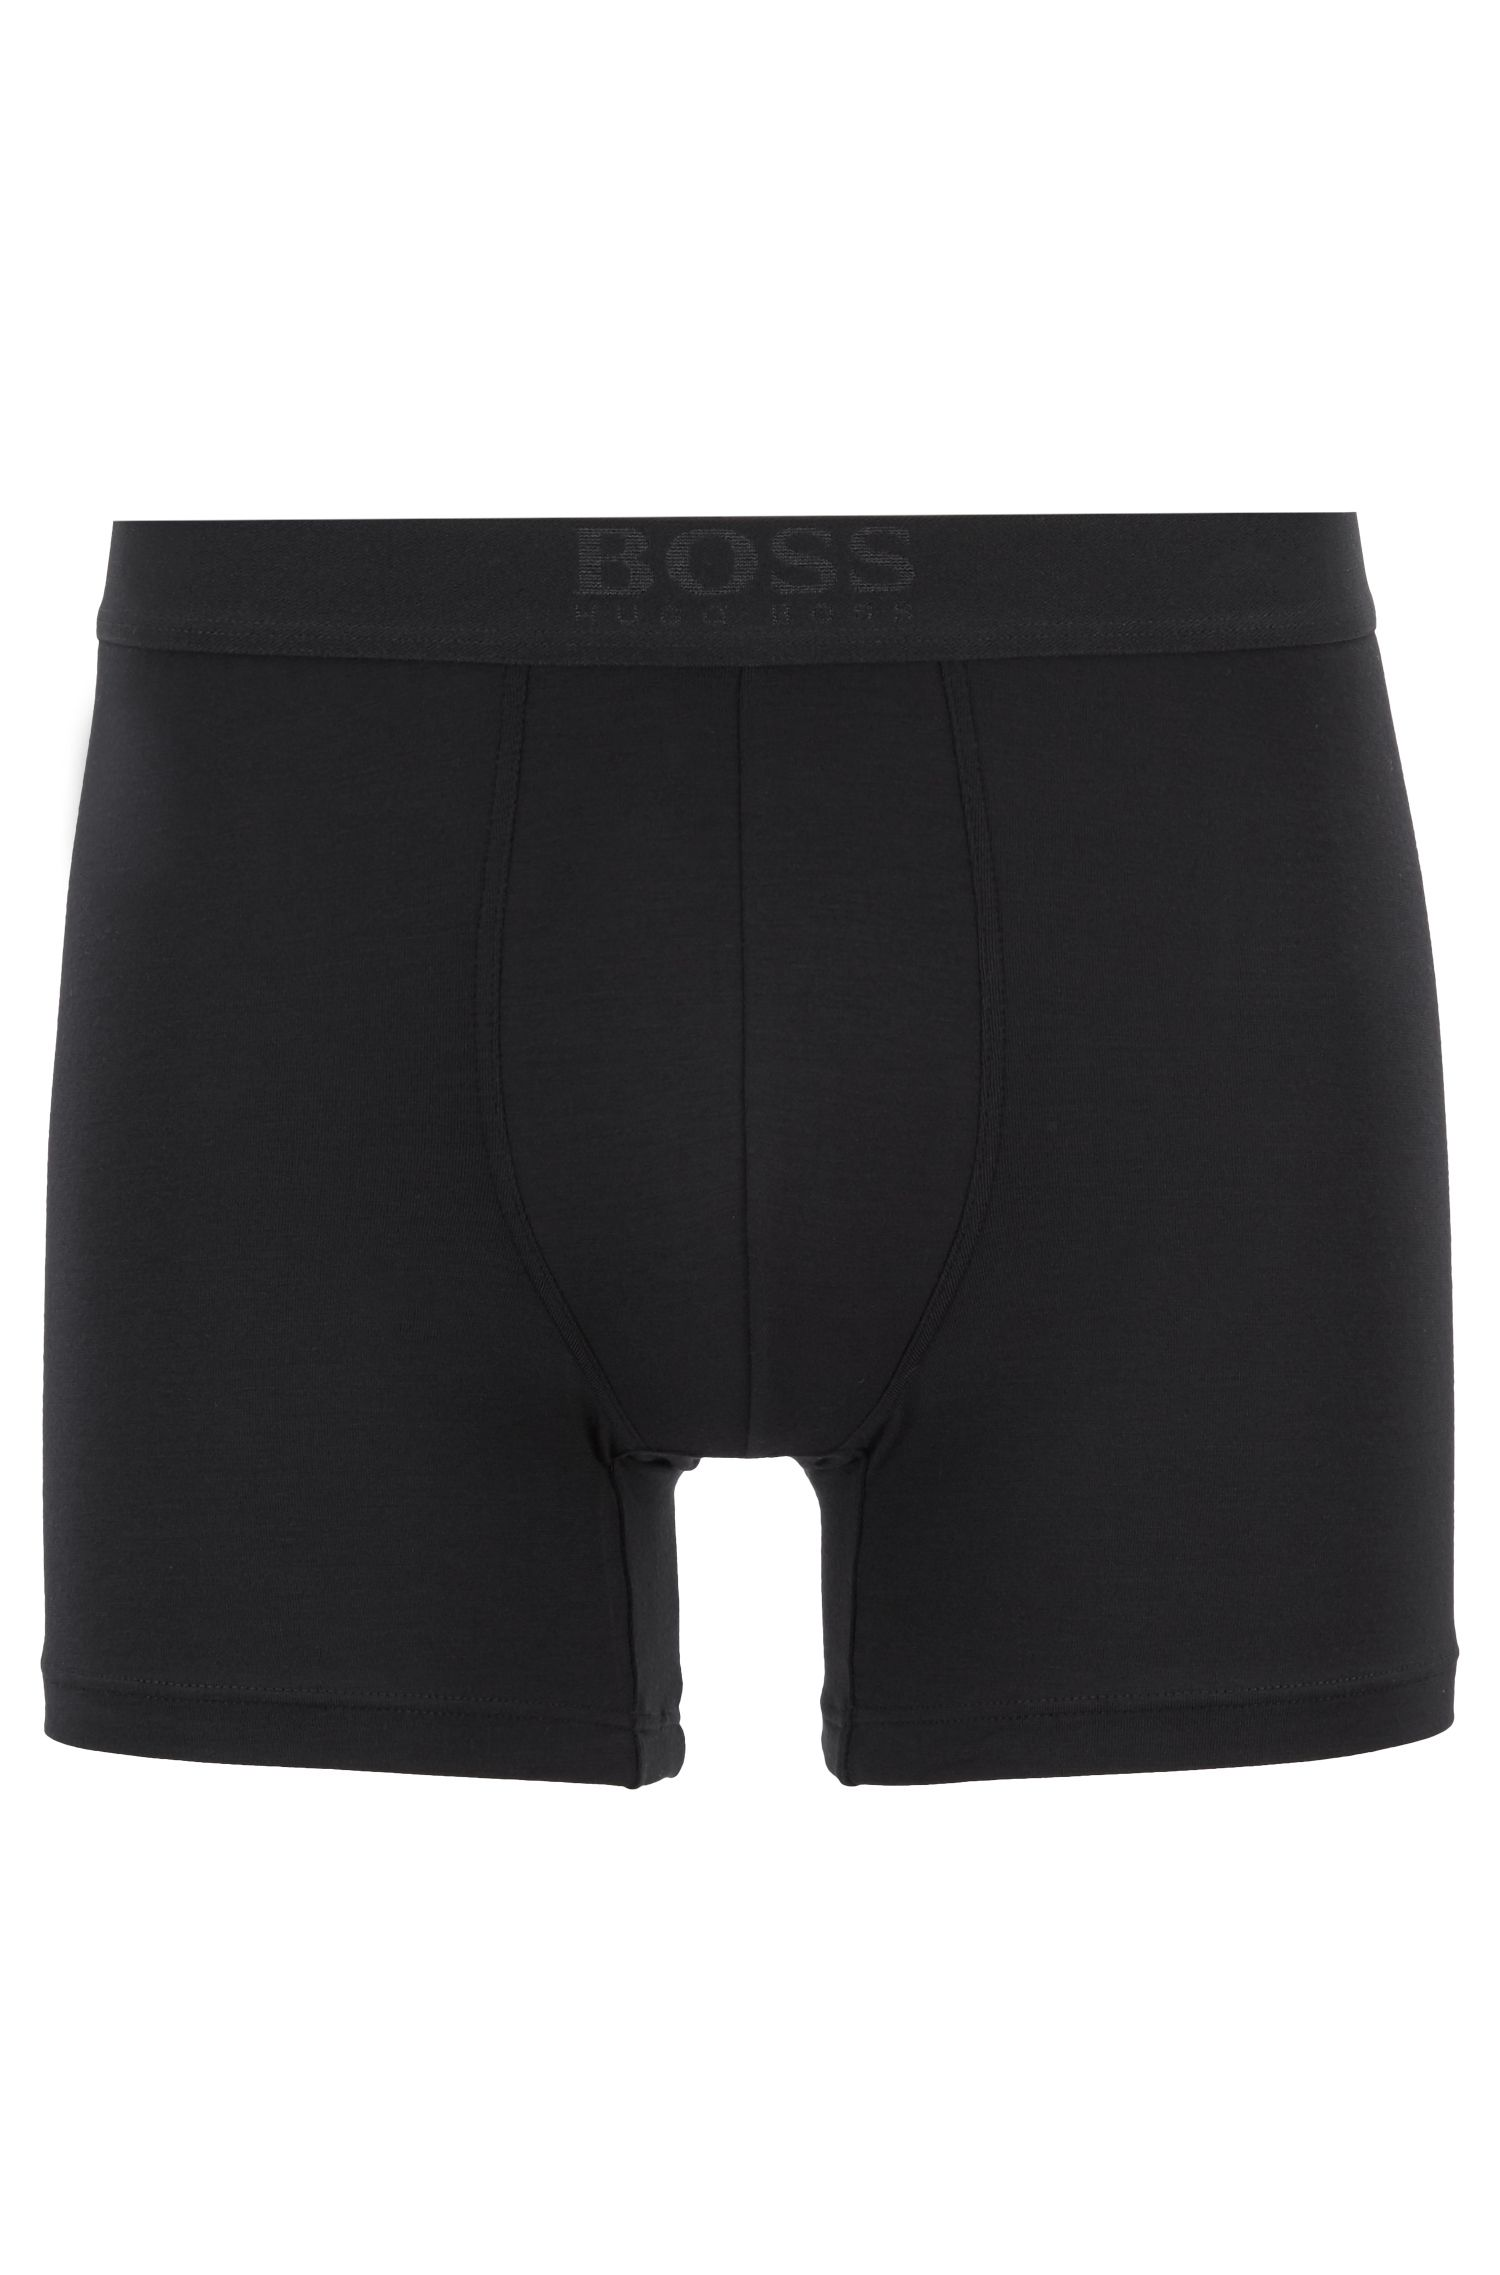 Two-pack of regular-rise boxer briefs, Black